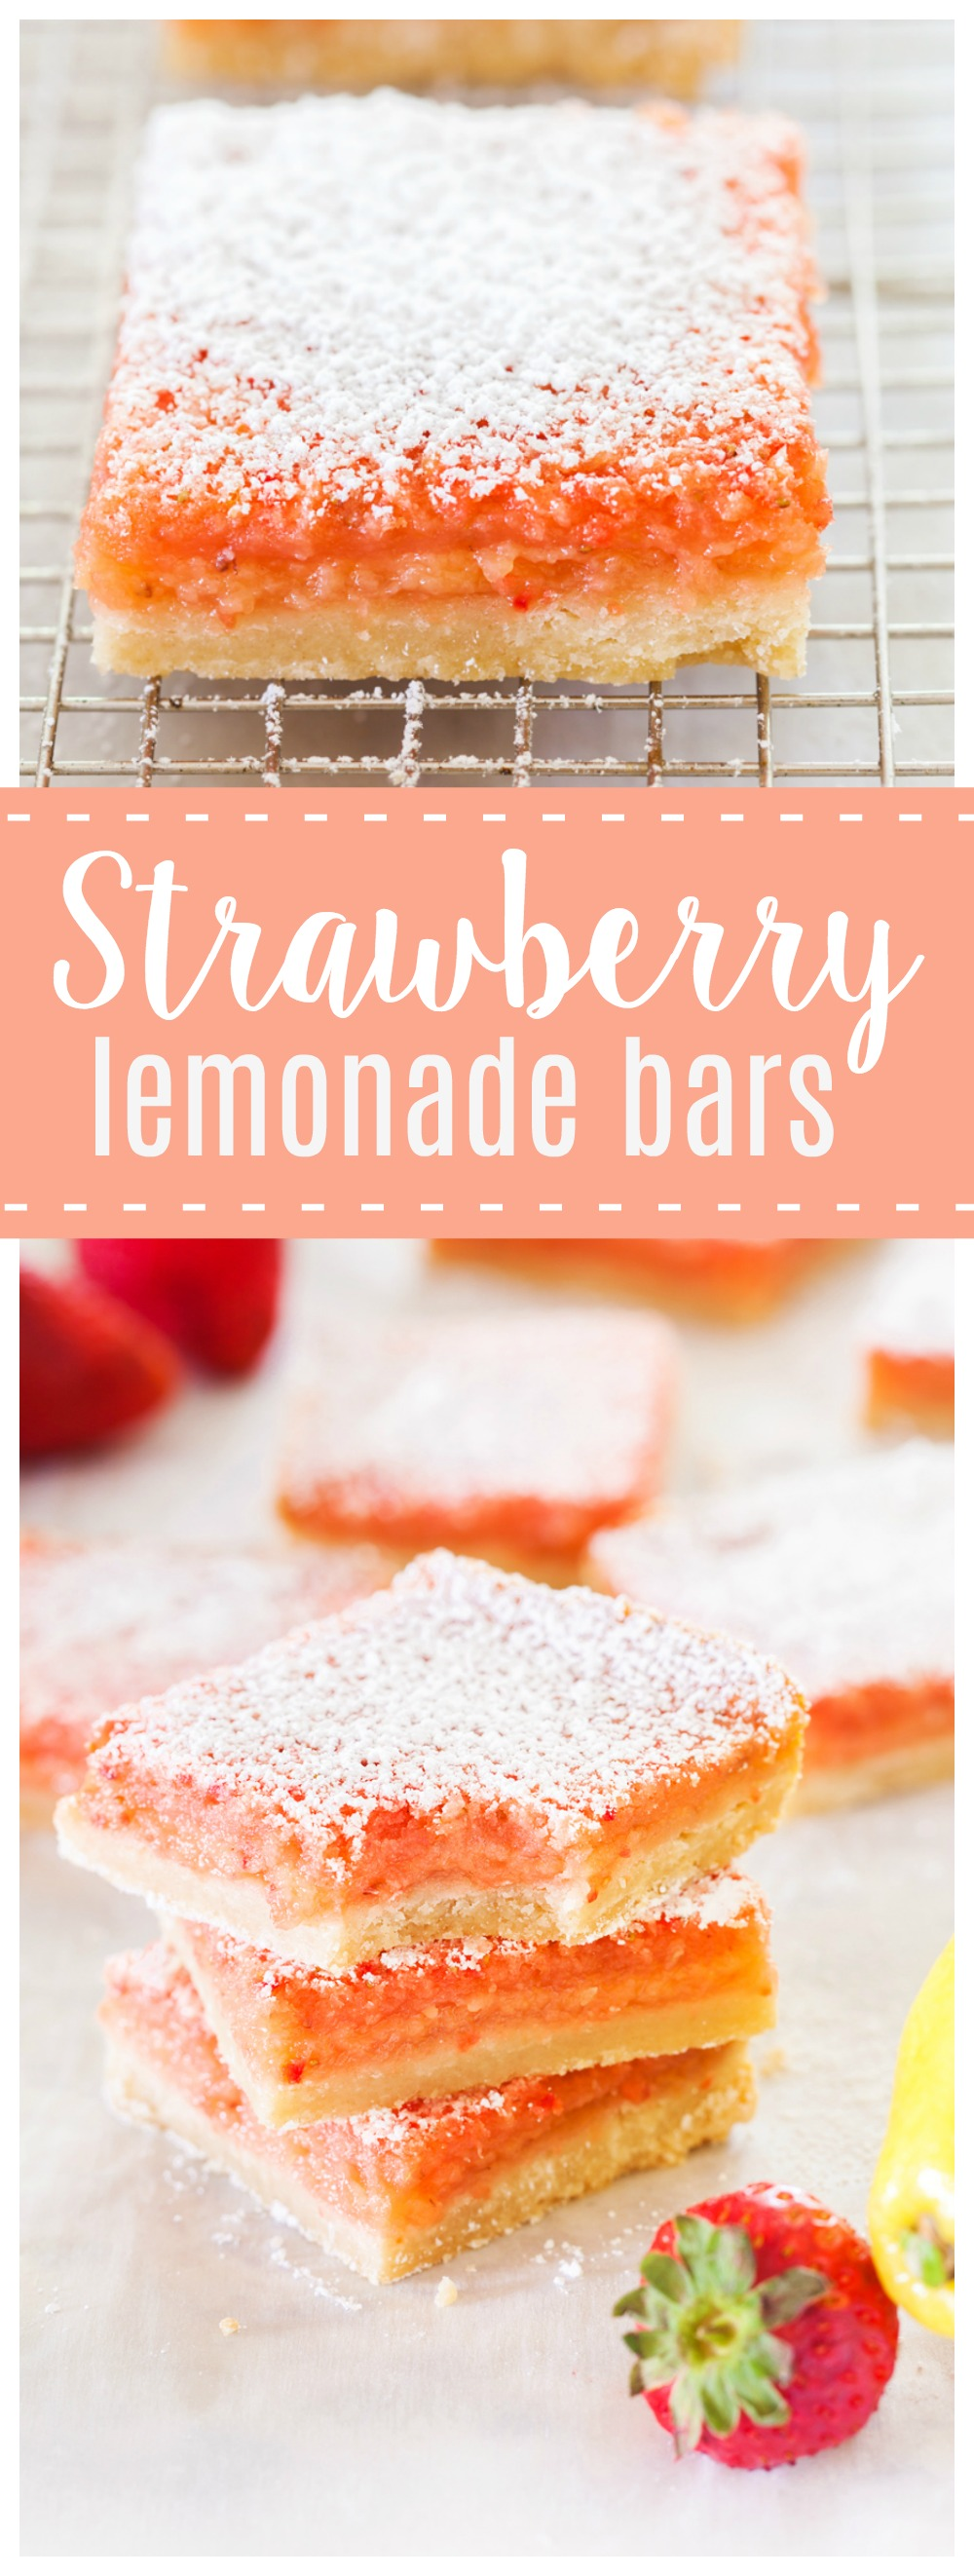 These Strawberry Lemonade Bars are a delicious bite of summer! Tangy lemonade and sweet strawberries make this a dessert you will be begging for seconds!